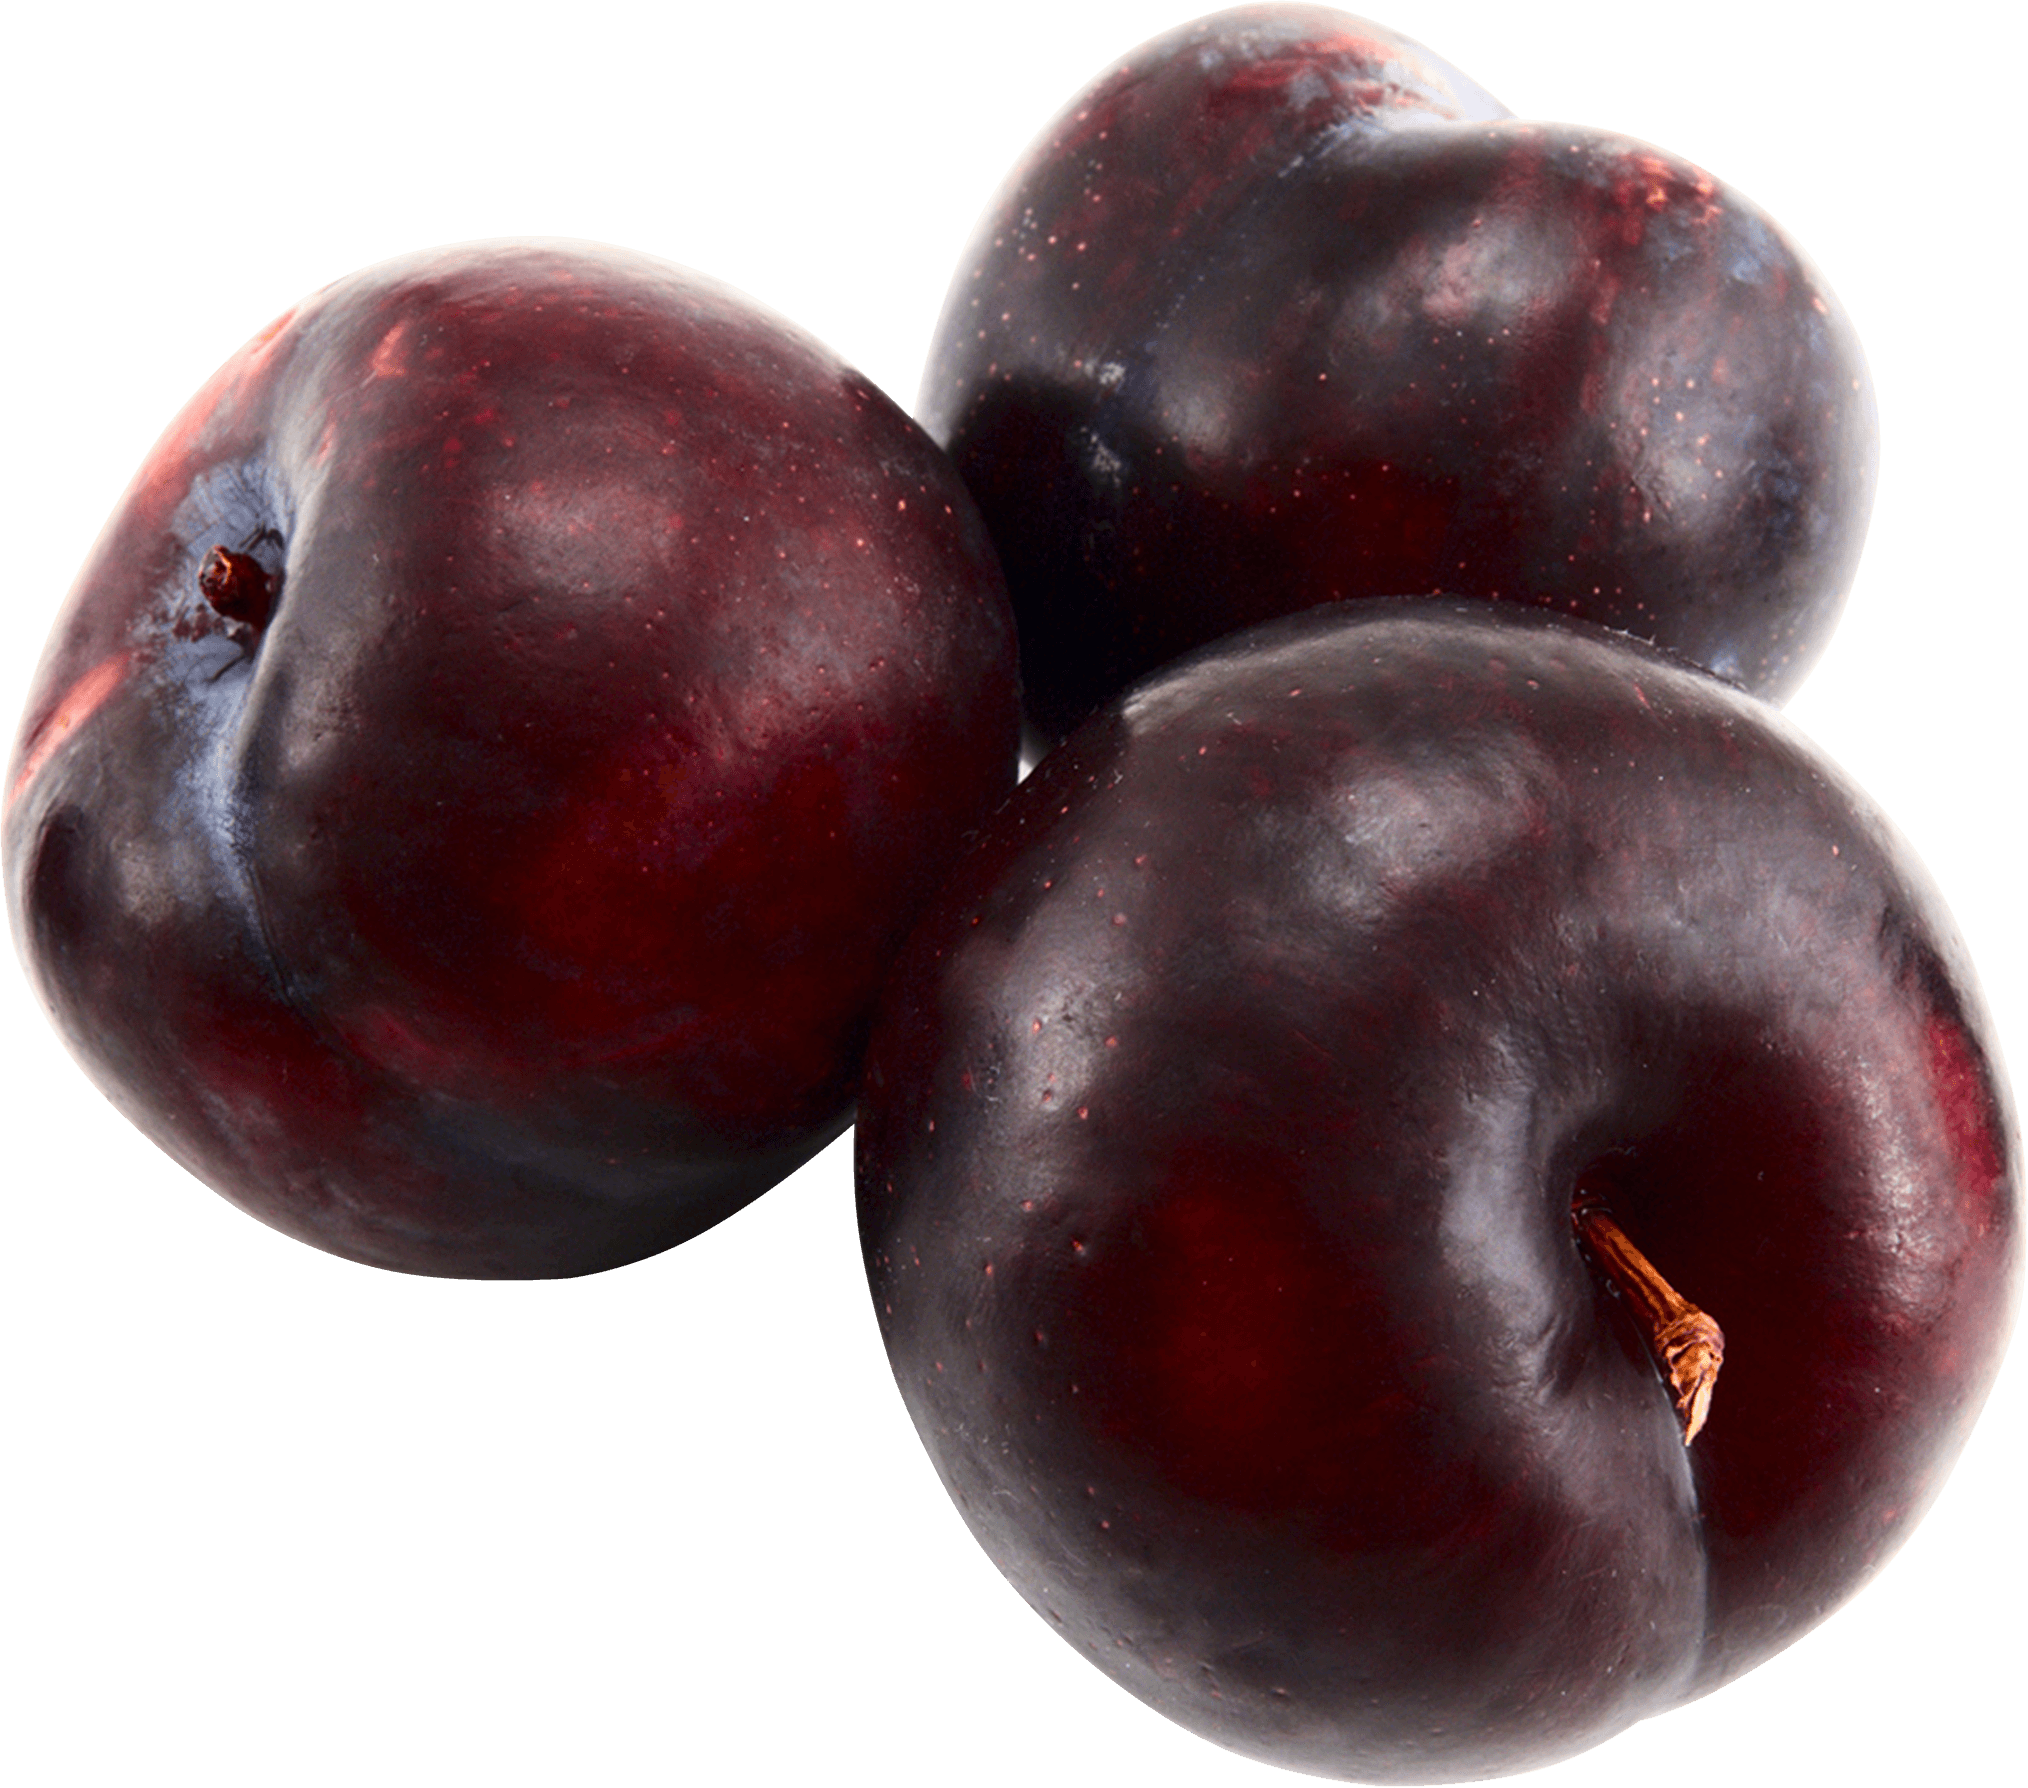 Plum Png Image PNG Image - Plum PNG